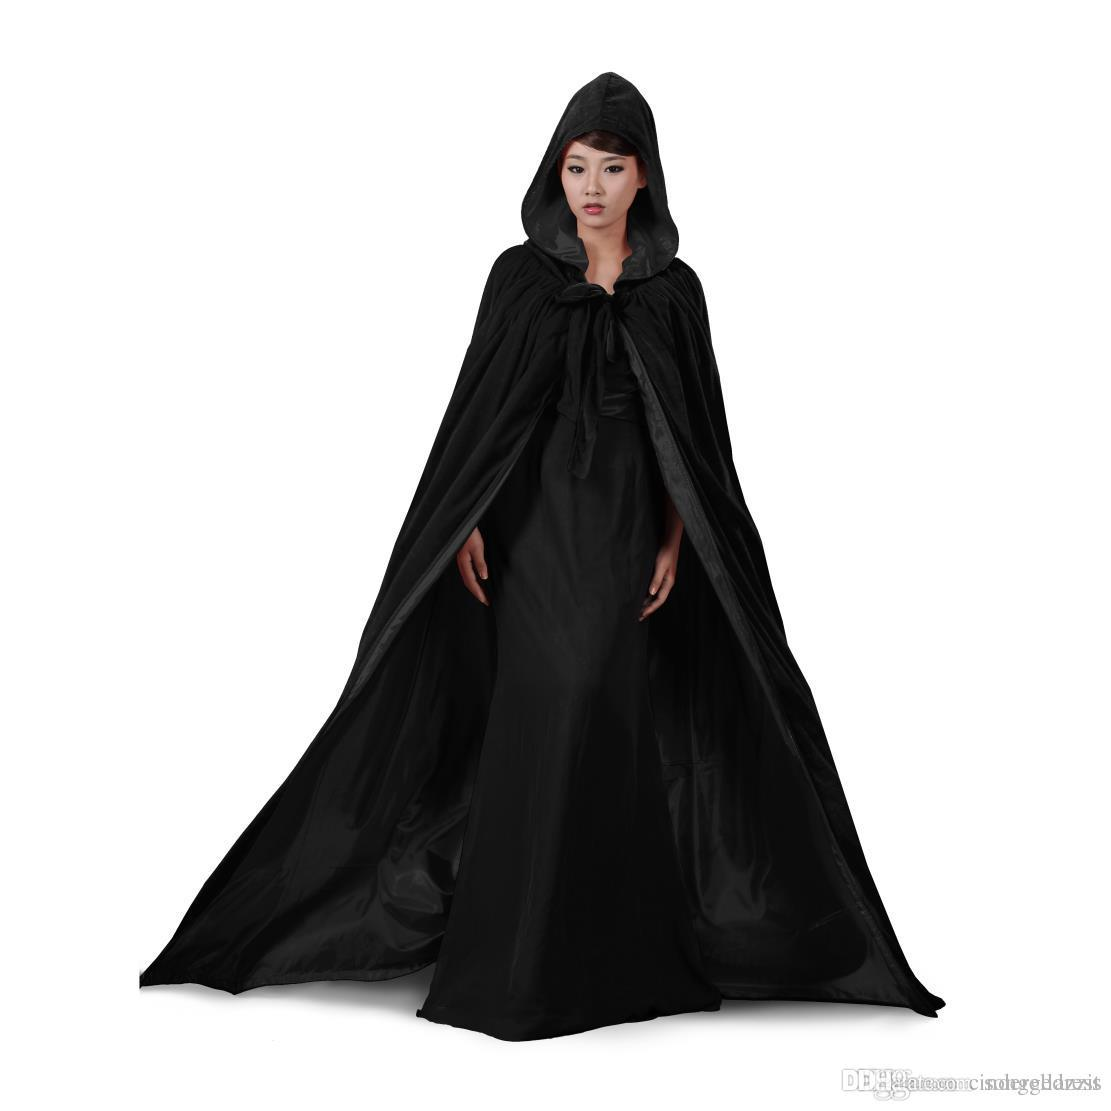 3953cd65a2 2019 Black And 10 Colour Lining Hooded Velvet Cloak Gothic Wicca Robe  Medieval Witchcraft Larp Cape Hooded Vampire Cape Halloween Party Cloak  From ...